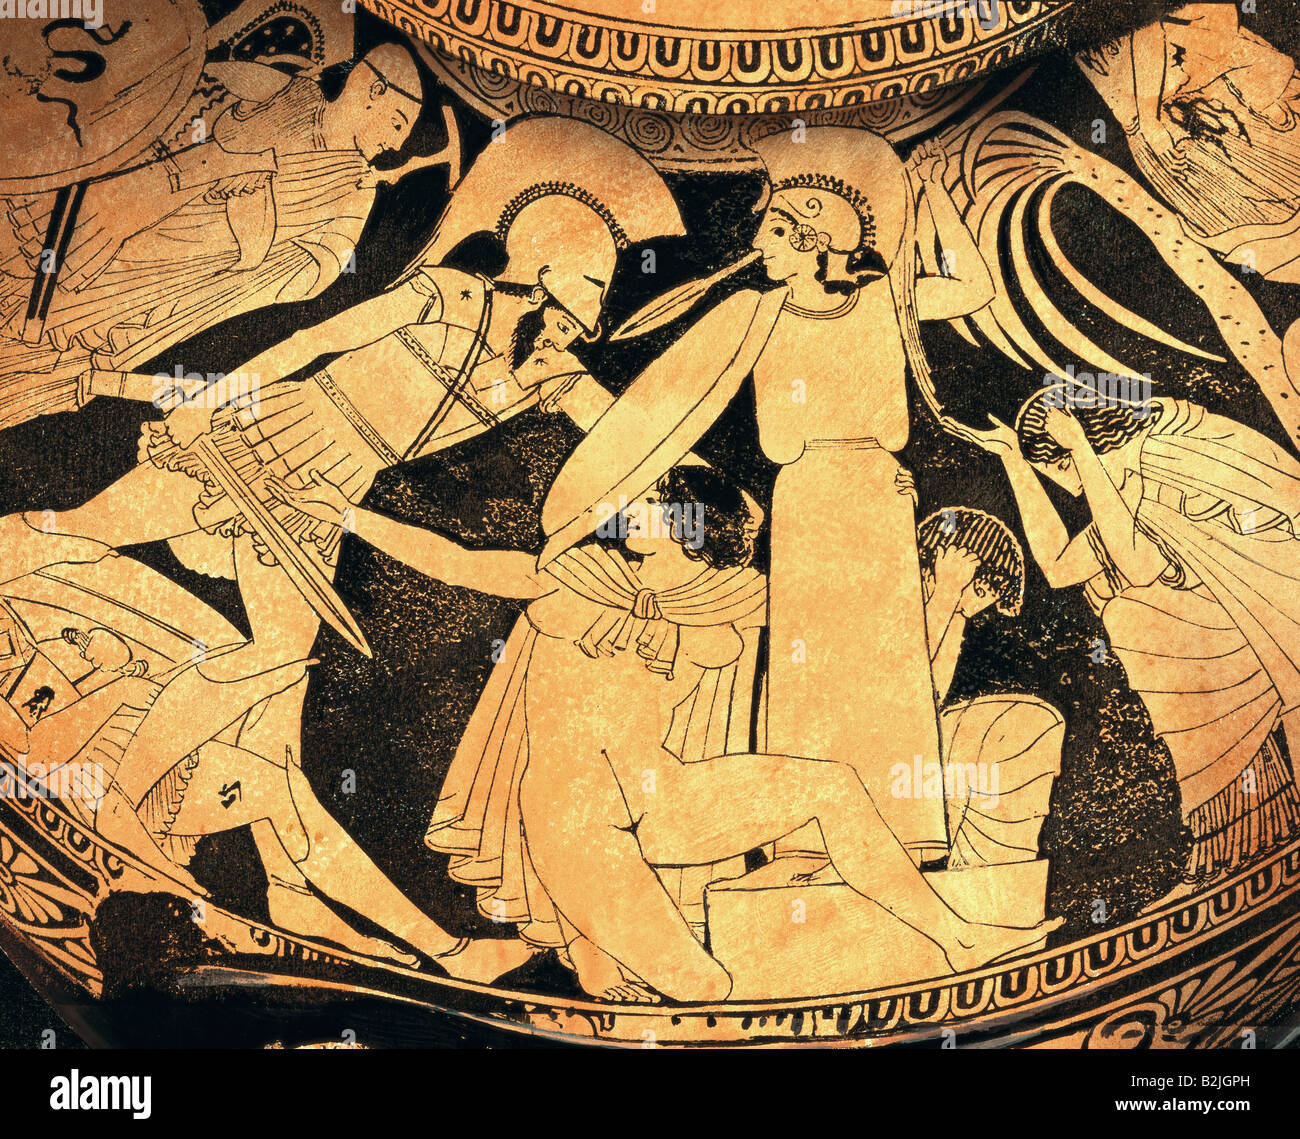 Fine arts ancient world greece vase painting hydria downfall fine arts ancient world greece vase painting hydria downfall of troy ajax and cassandra in the temple of athena by the k reviewsmspy